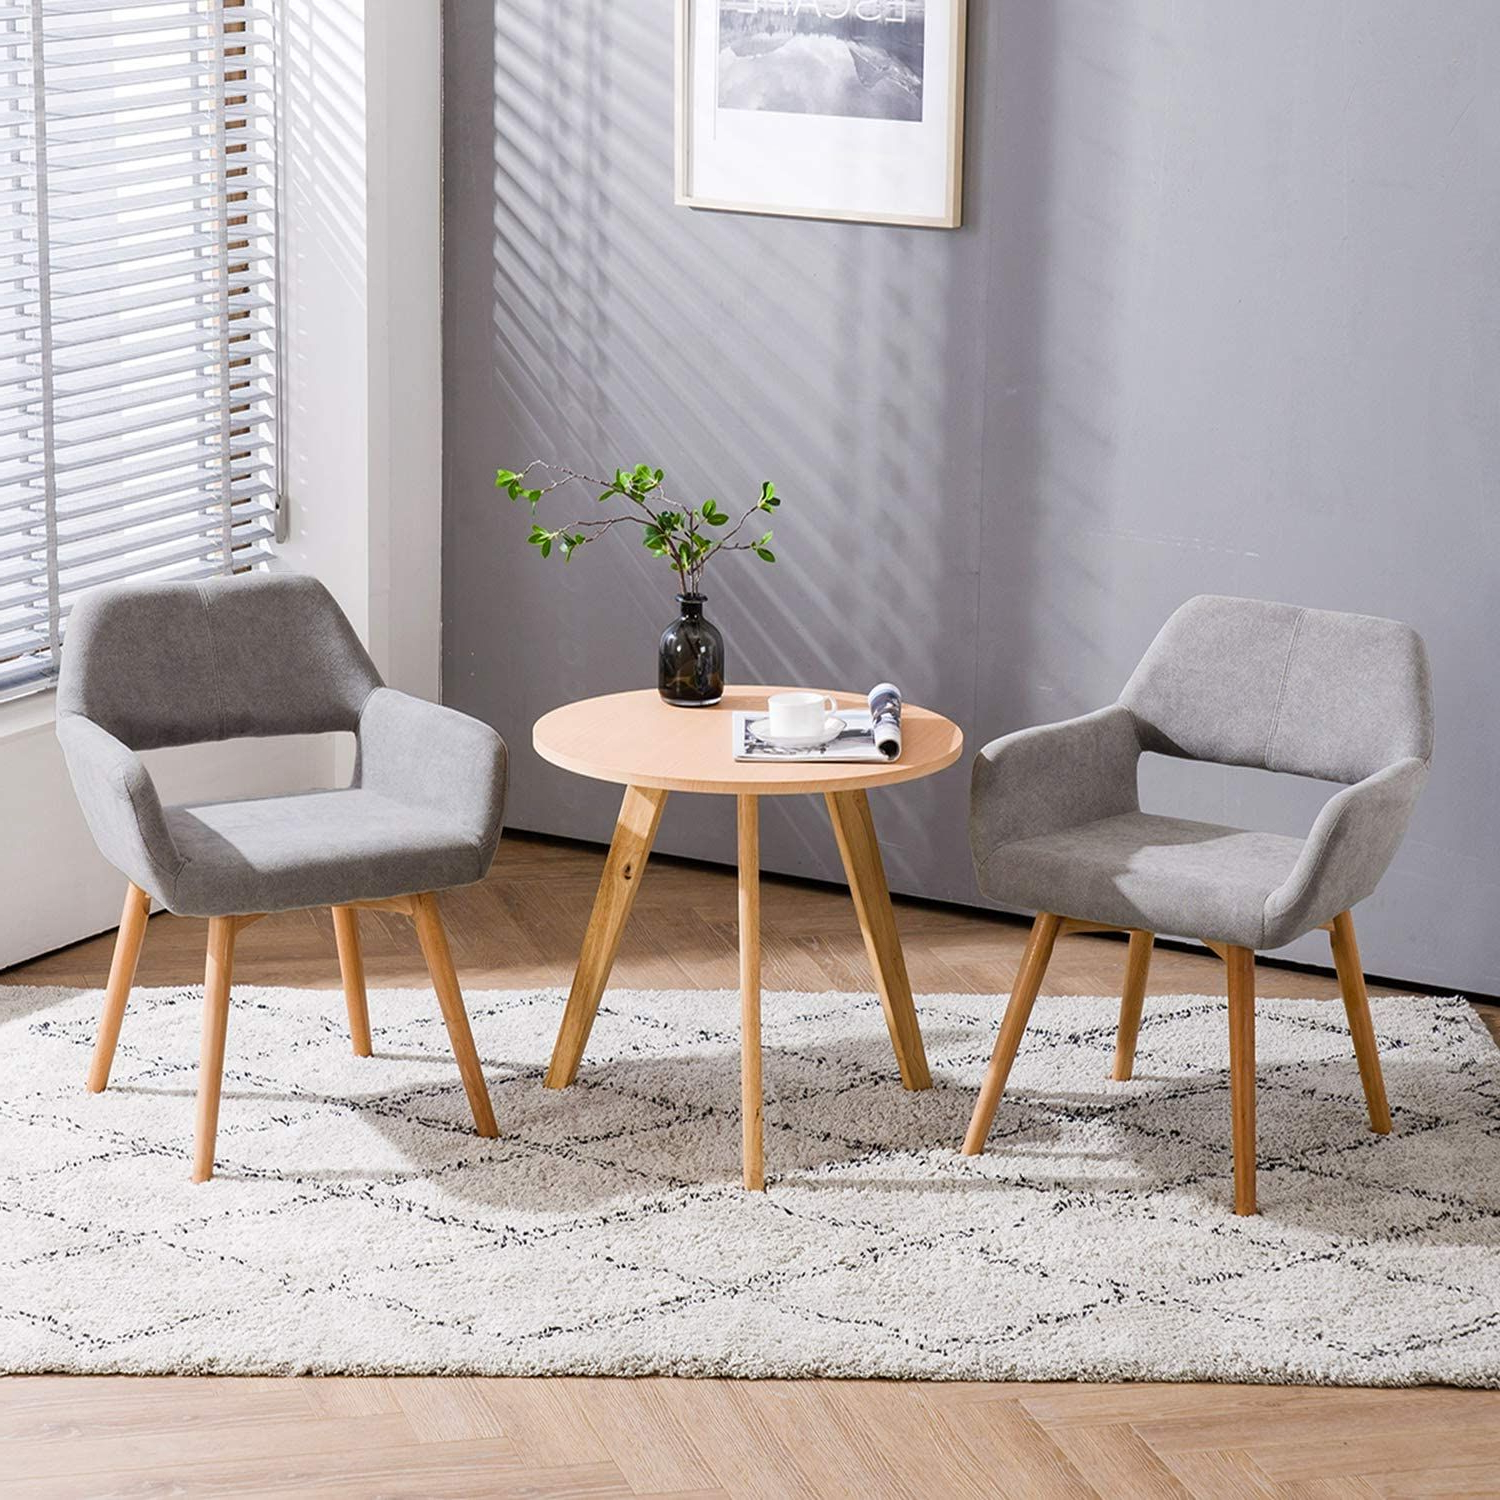 Well Liked Brister Swivel Side Chairs Pertaining To Homy Grigio Modern Living Dining Room Accent Arm Chairs Club (View 15 of 20)